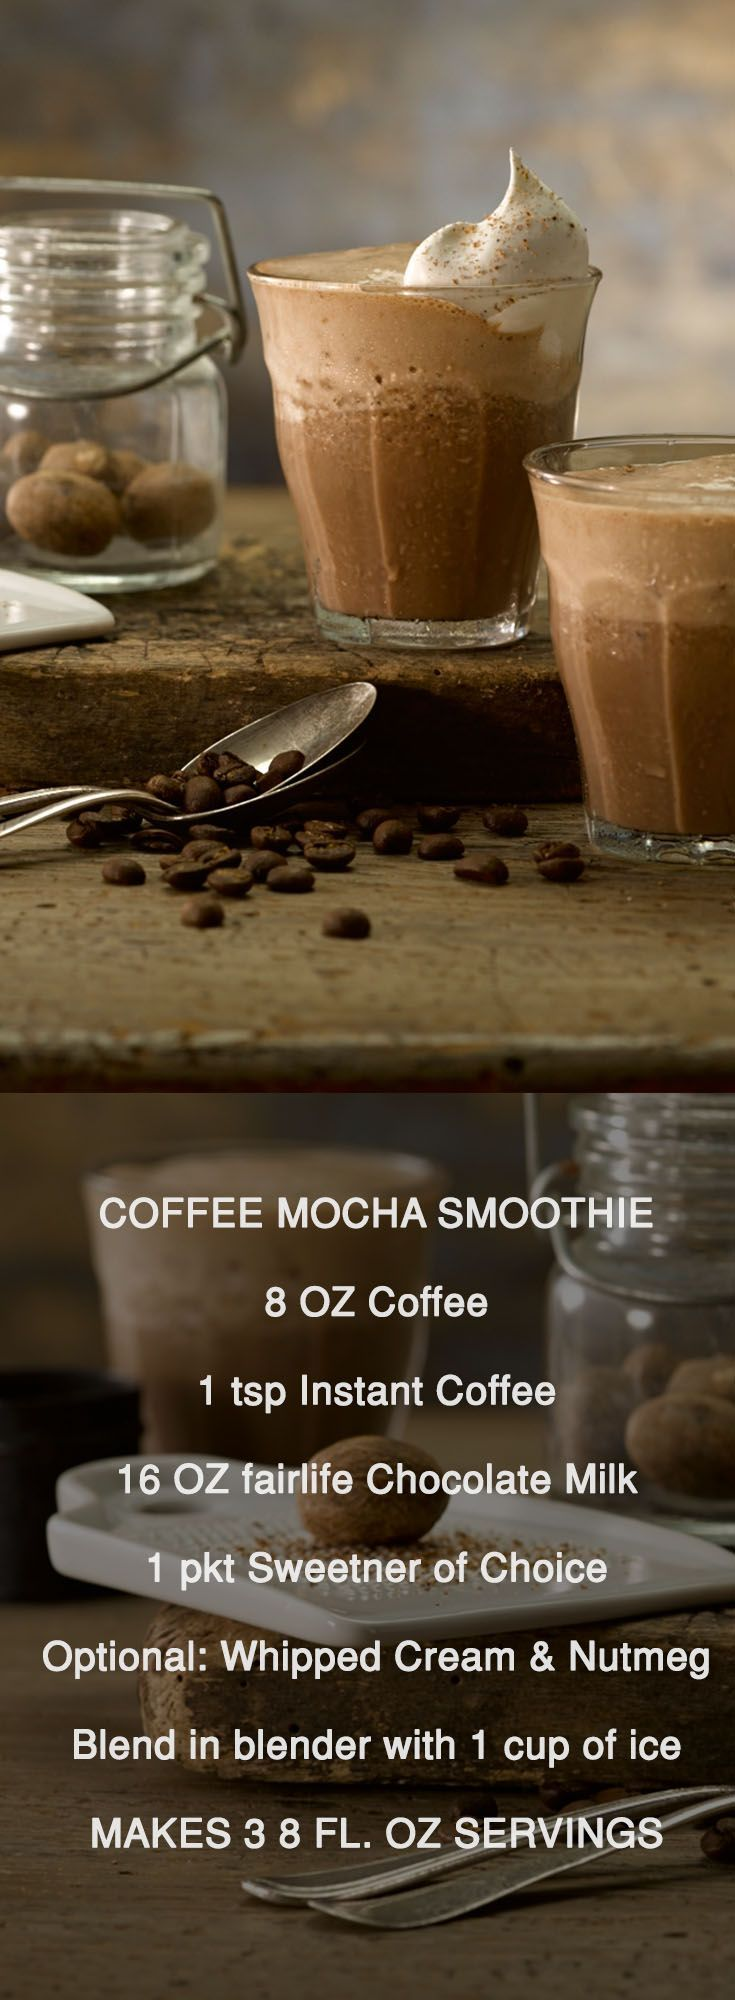 Need to jumpstart your morning? Why not blend up a Coffee Mocha Smoothie!? Grab …